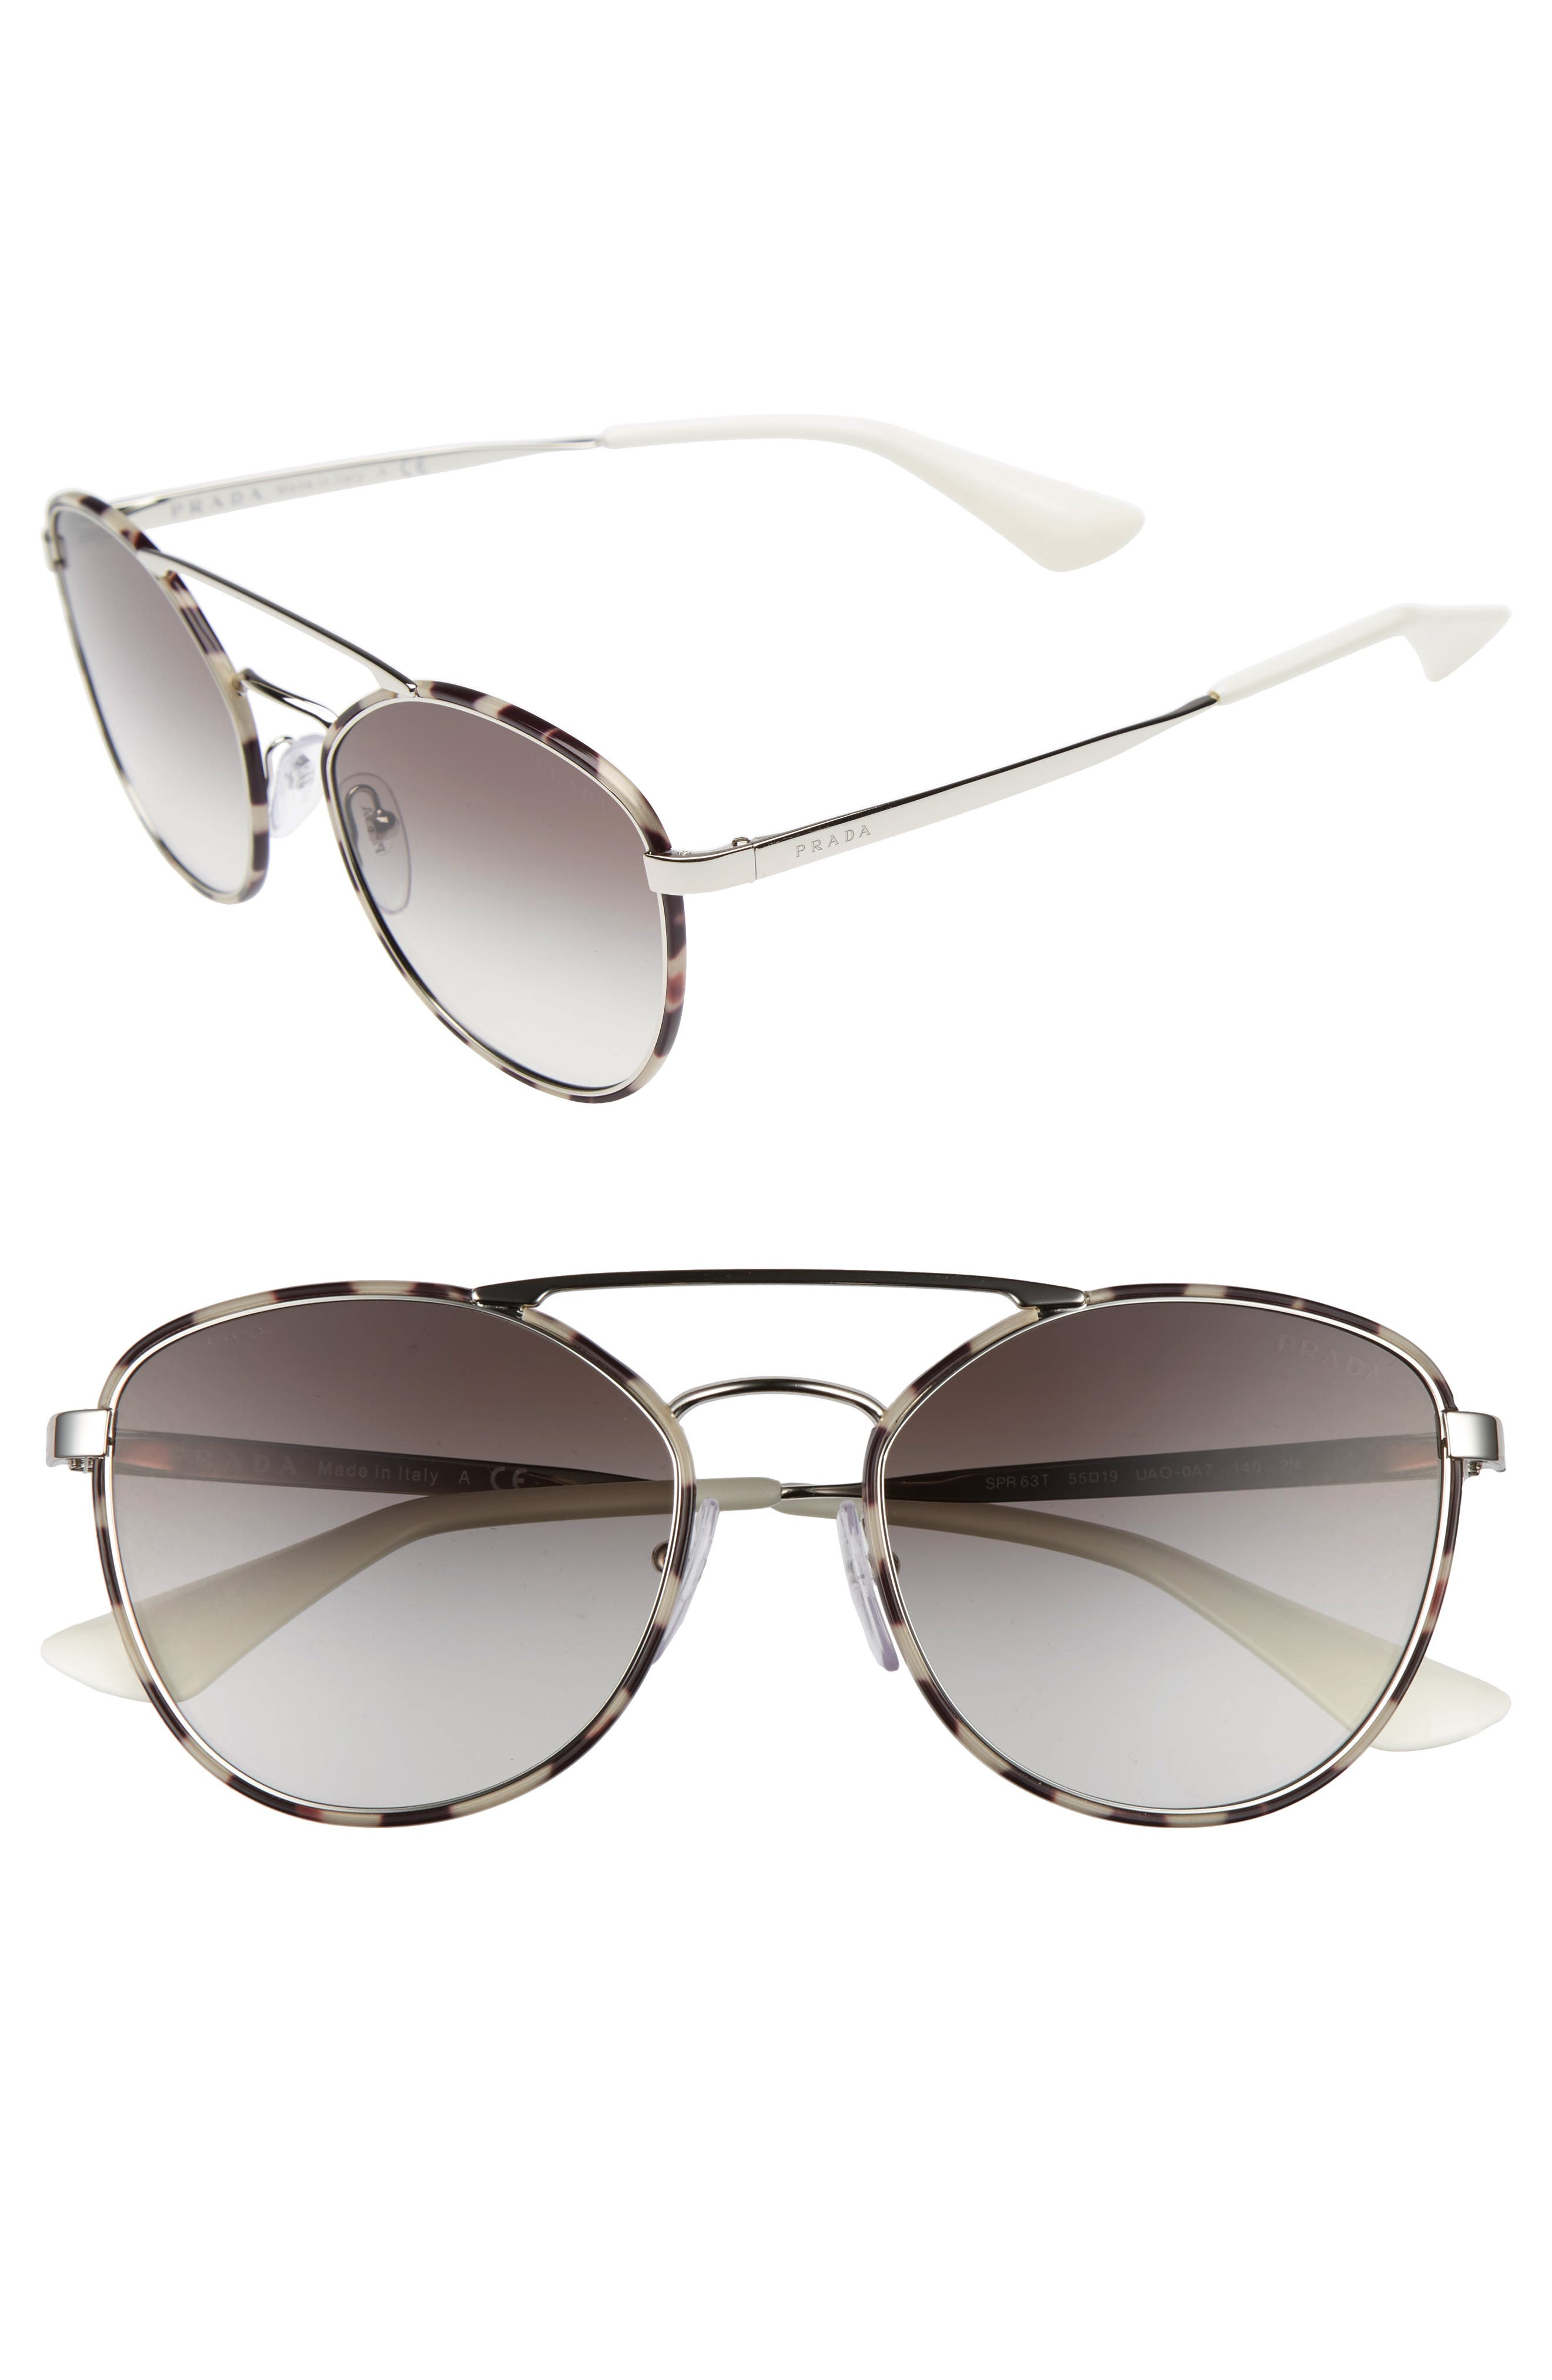 55mm Gradient Aviator Sunglasses,                         Main,                         color, Spotty Brown